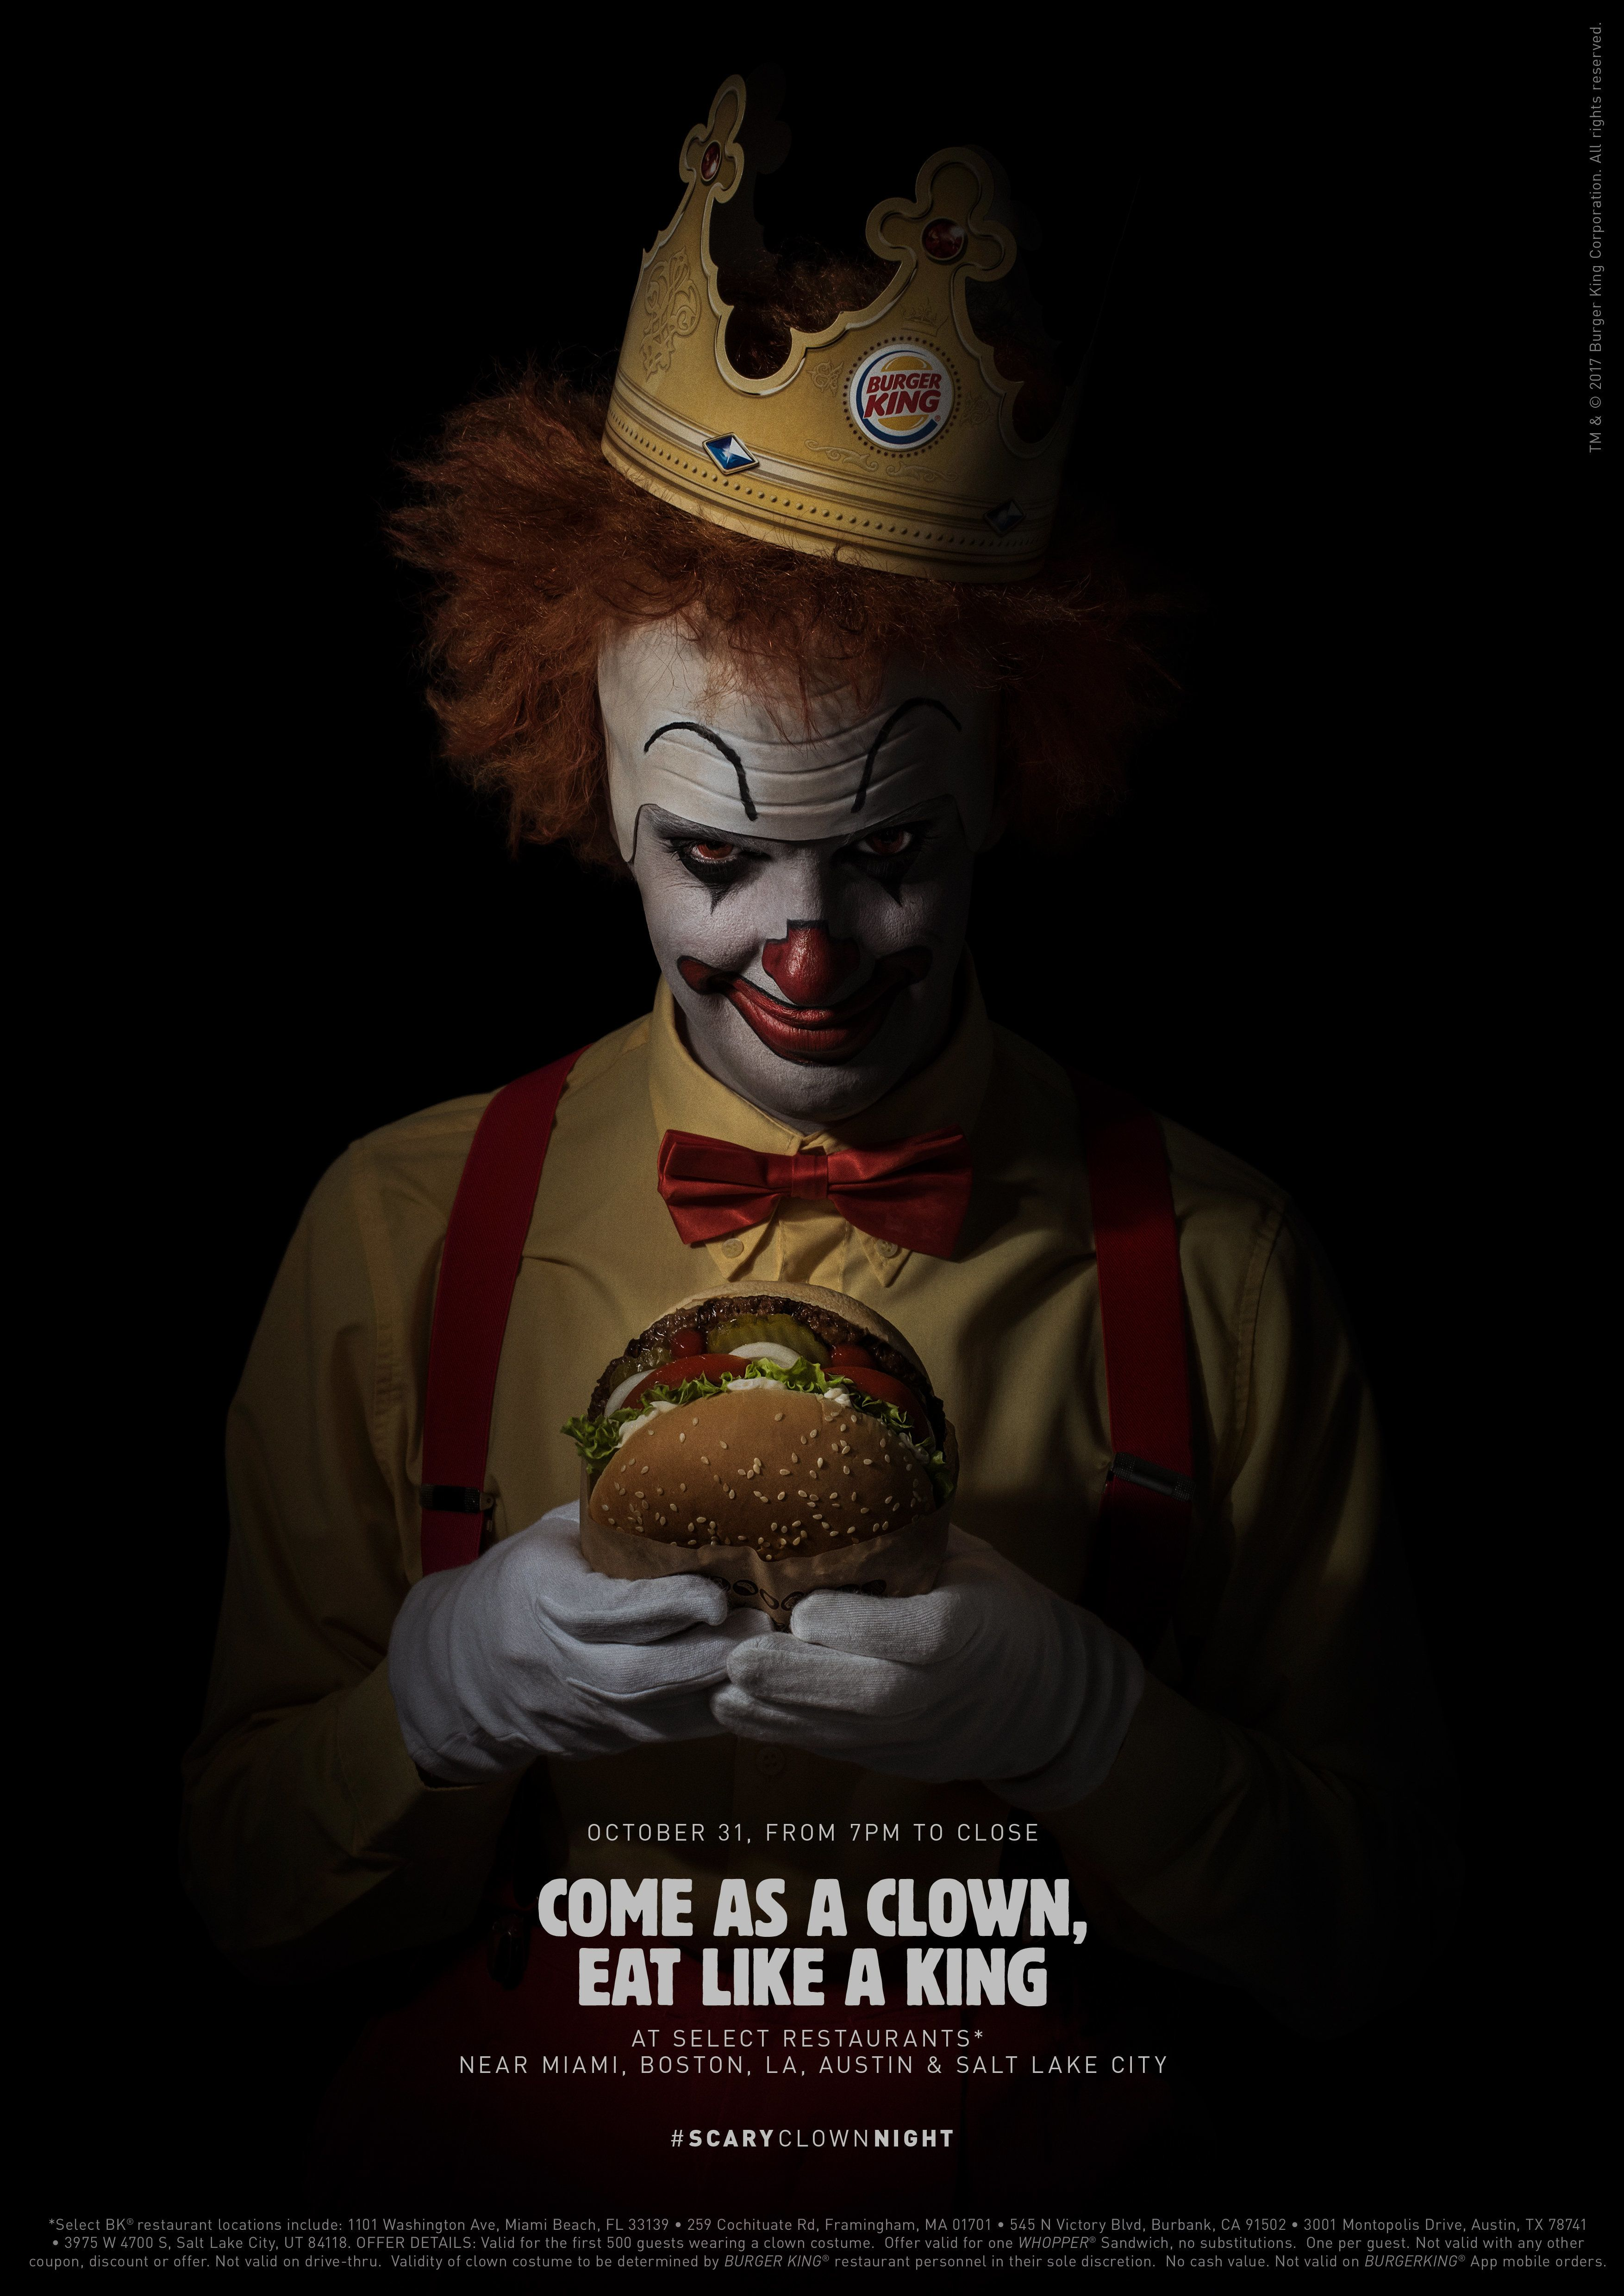 afraid of clowns? might want to stay clear of burger king on